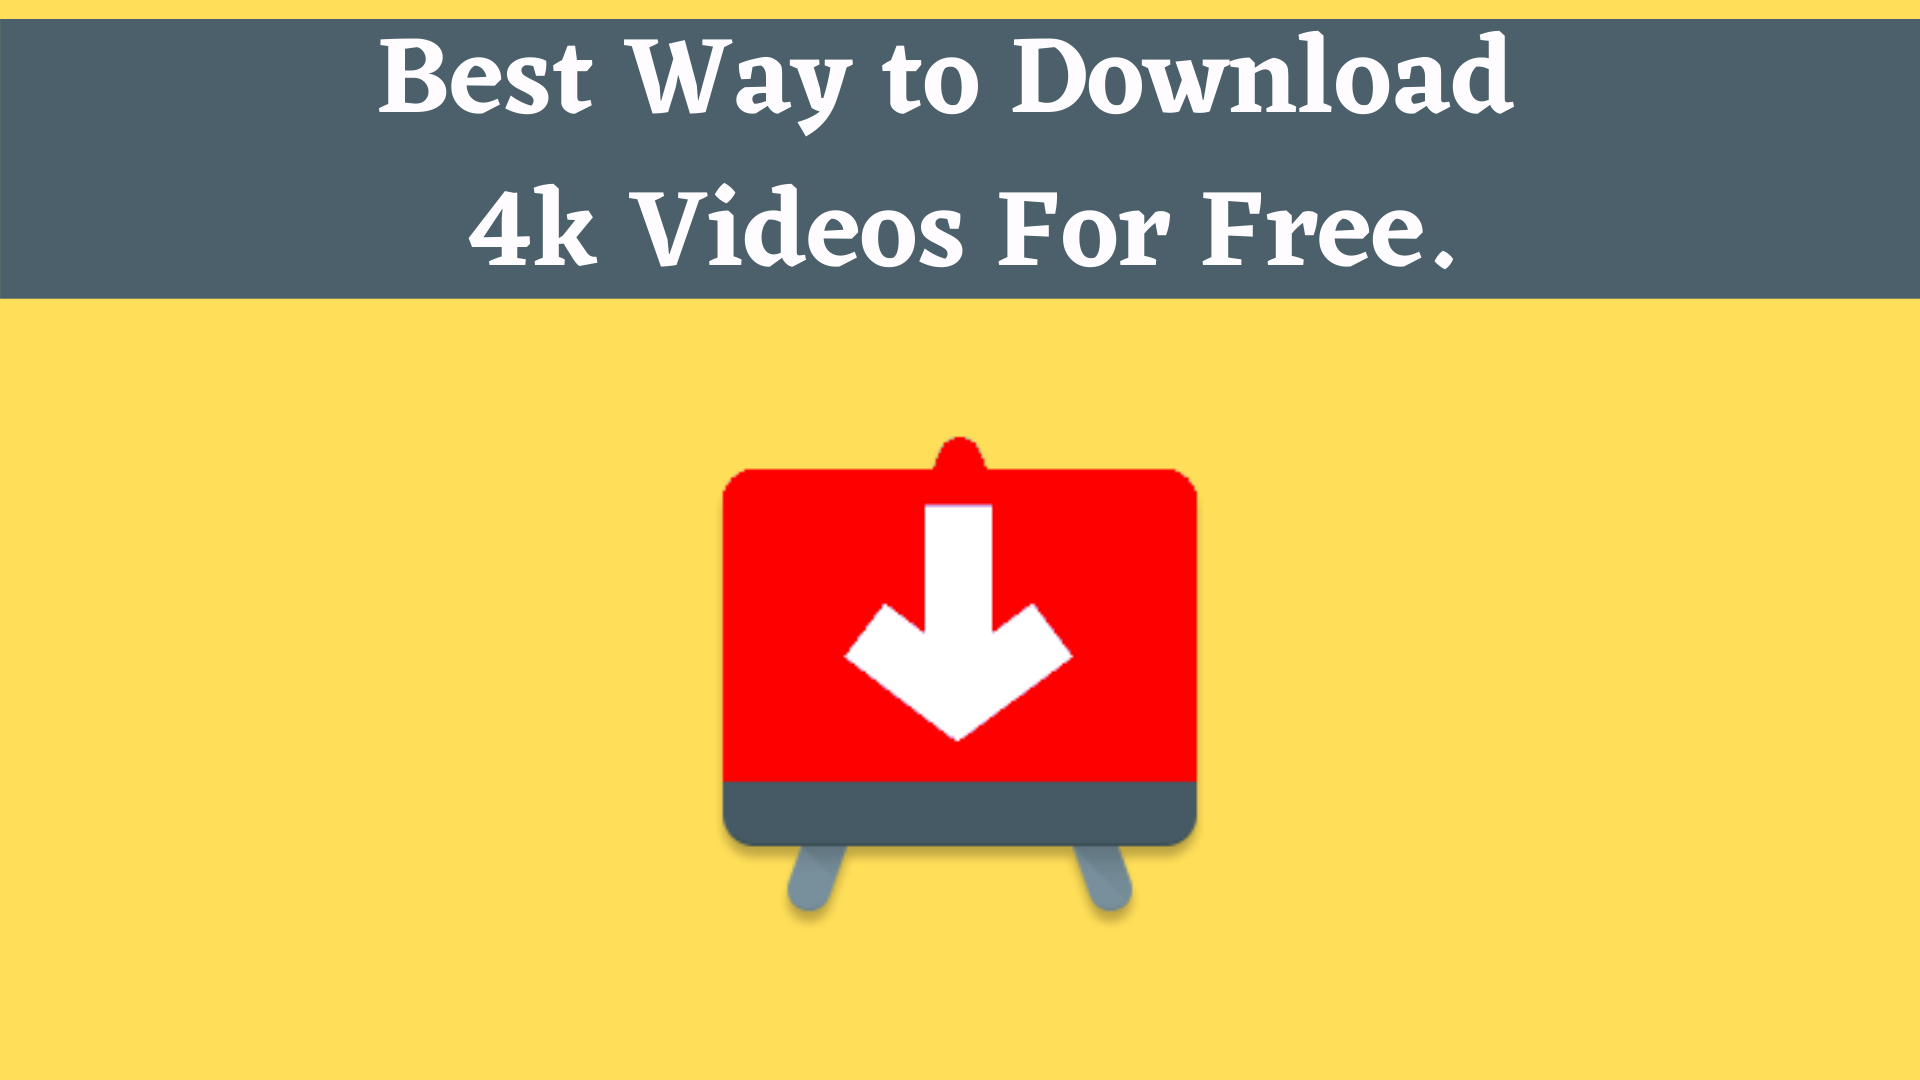 How to download 4 k videos using Video Downloader | Best Video Downloader | youtube video downloader | online video downloader | facebook video downloader